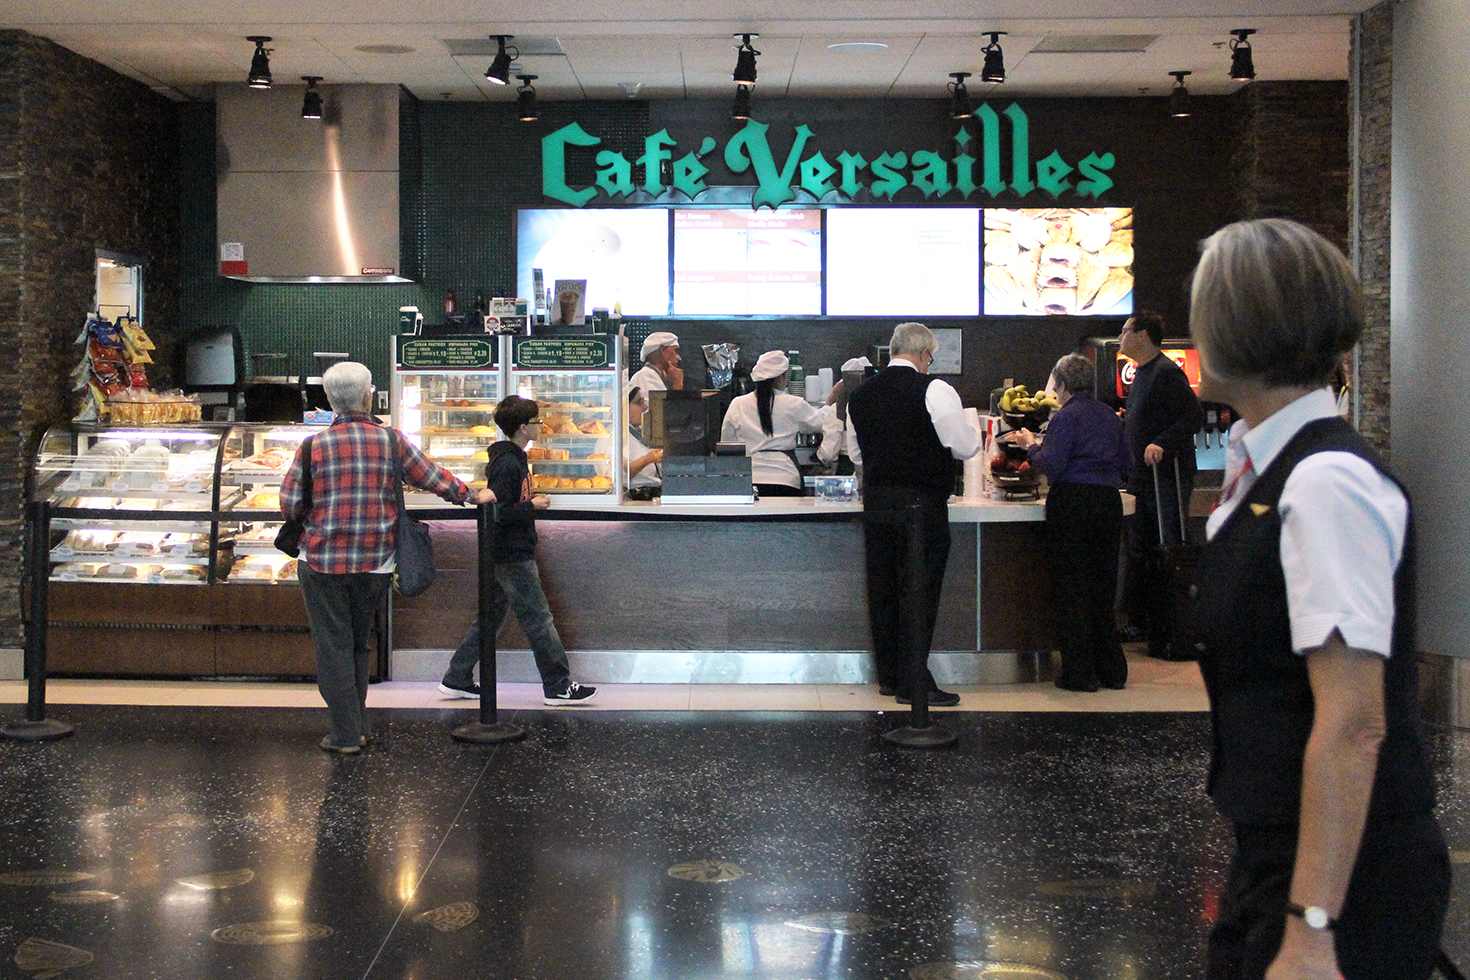 Cafe Versailles at MIA Airport | Miami, Florida